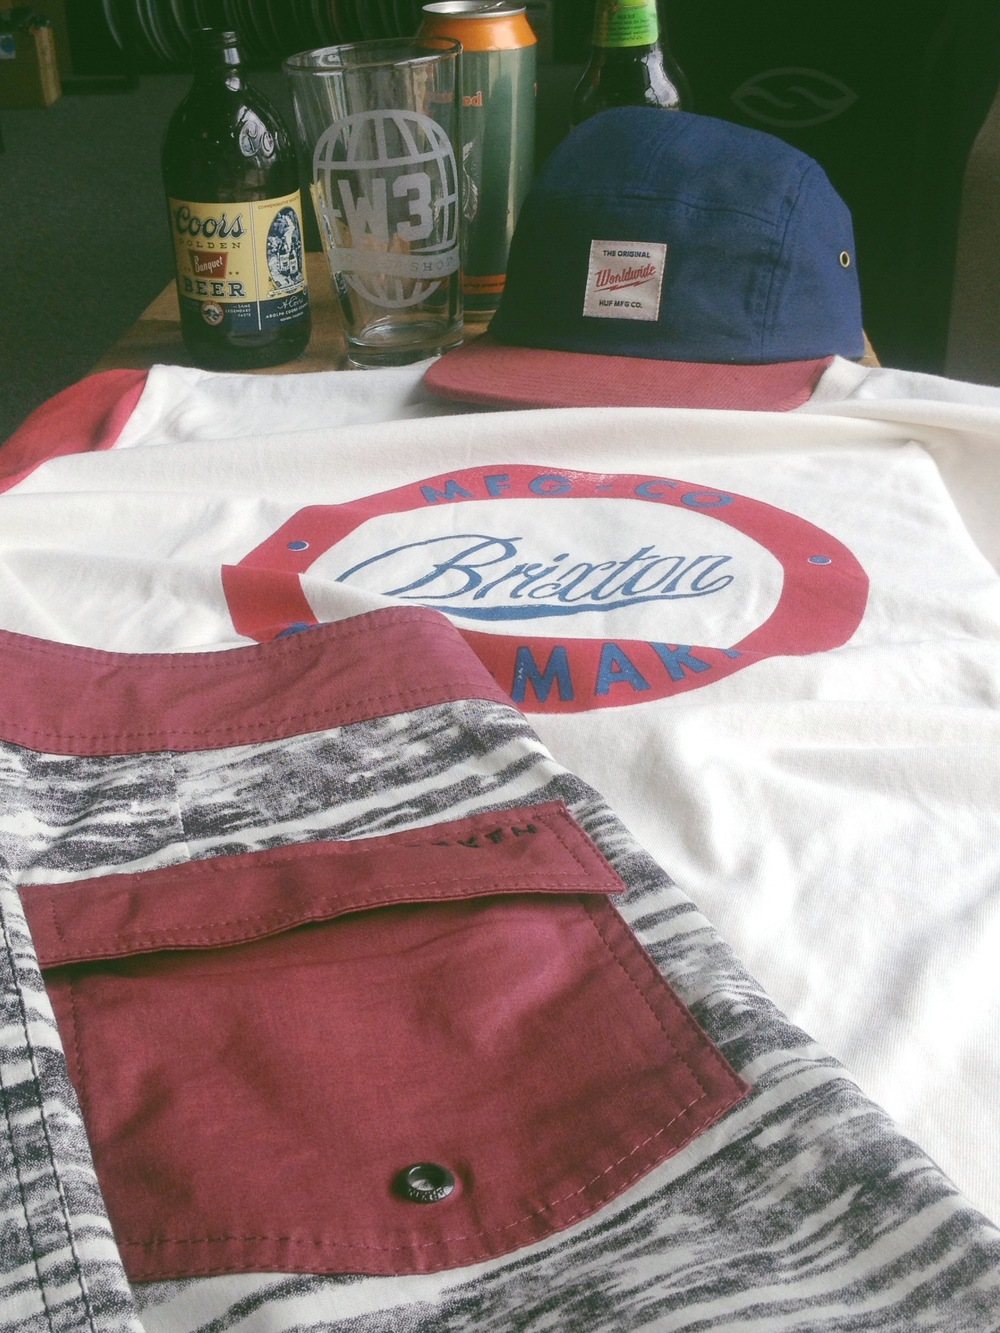 A little sumsum in the spirit of Independence Day! Brixton t-shirt and board shorts teamed with a Huf 5 panel and last but not least.. BOOZE. Have fun and stay safe out there!